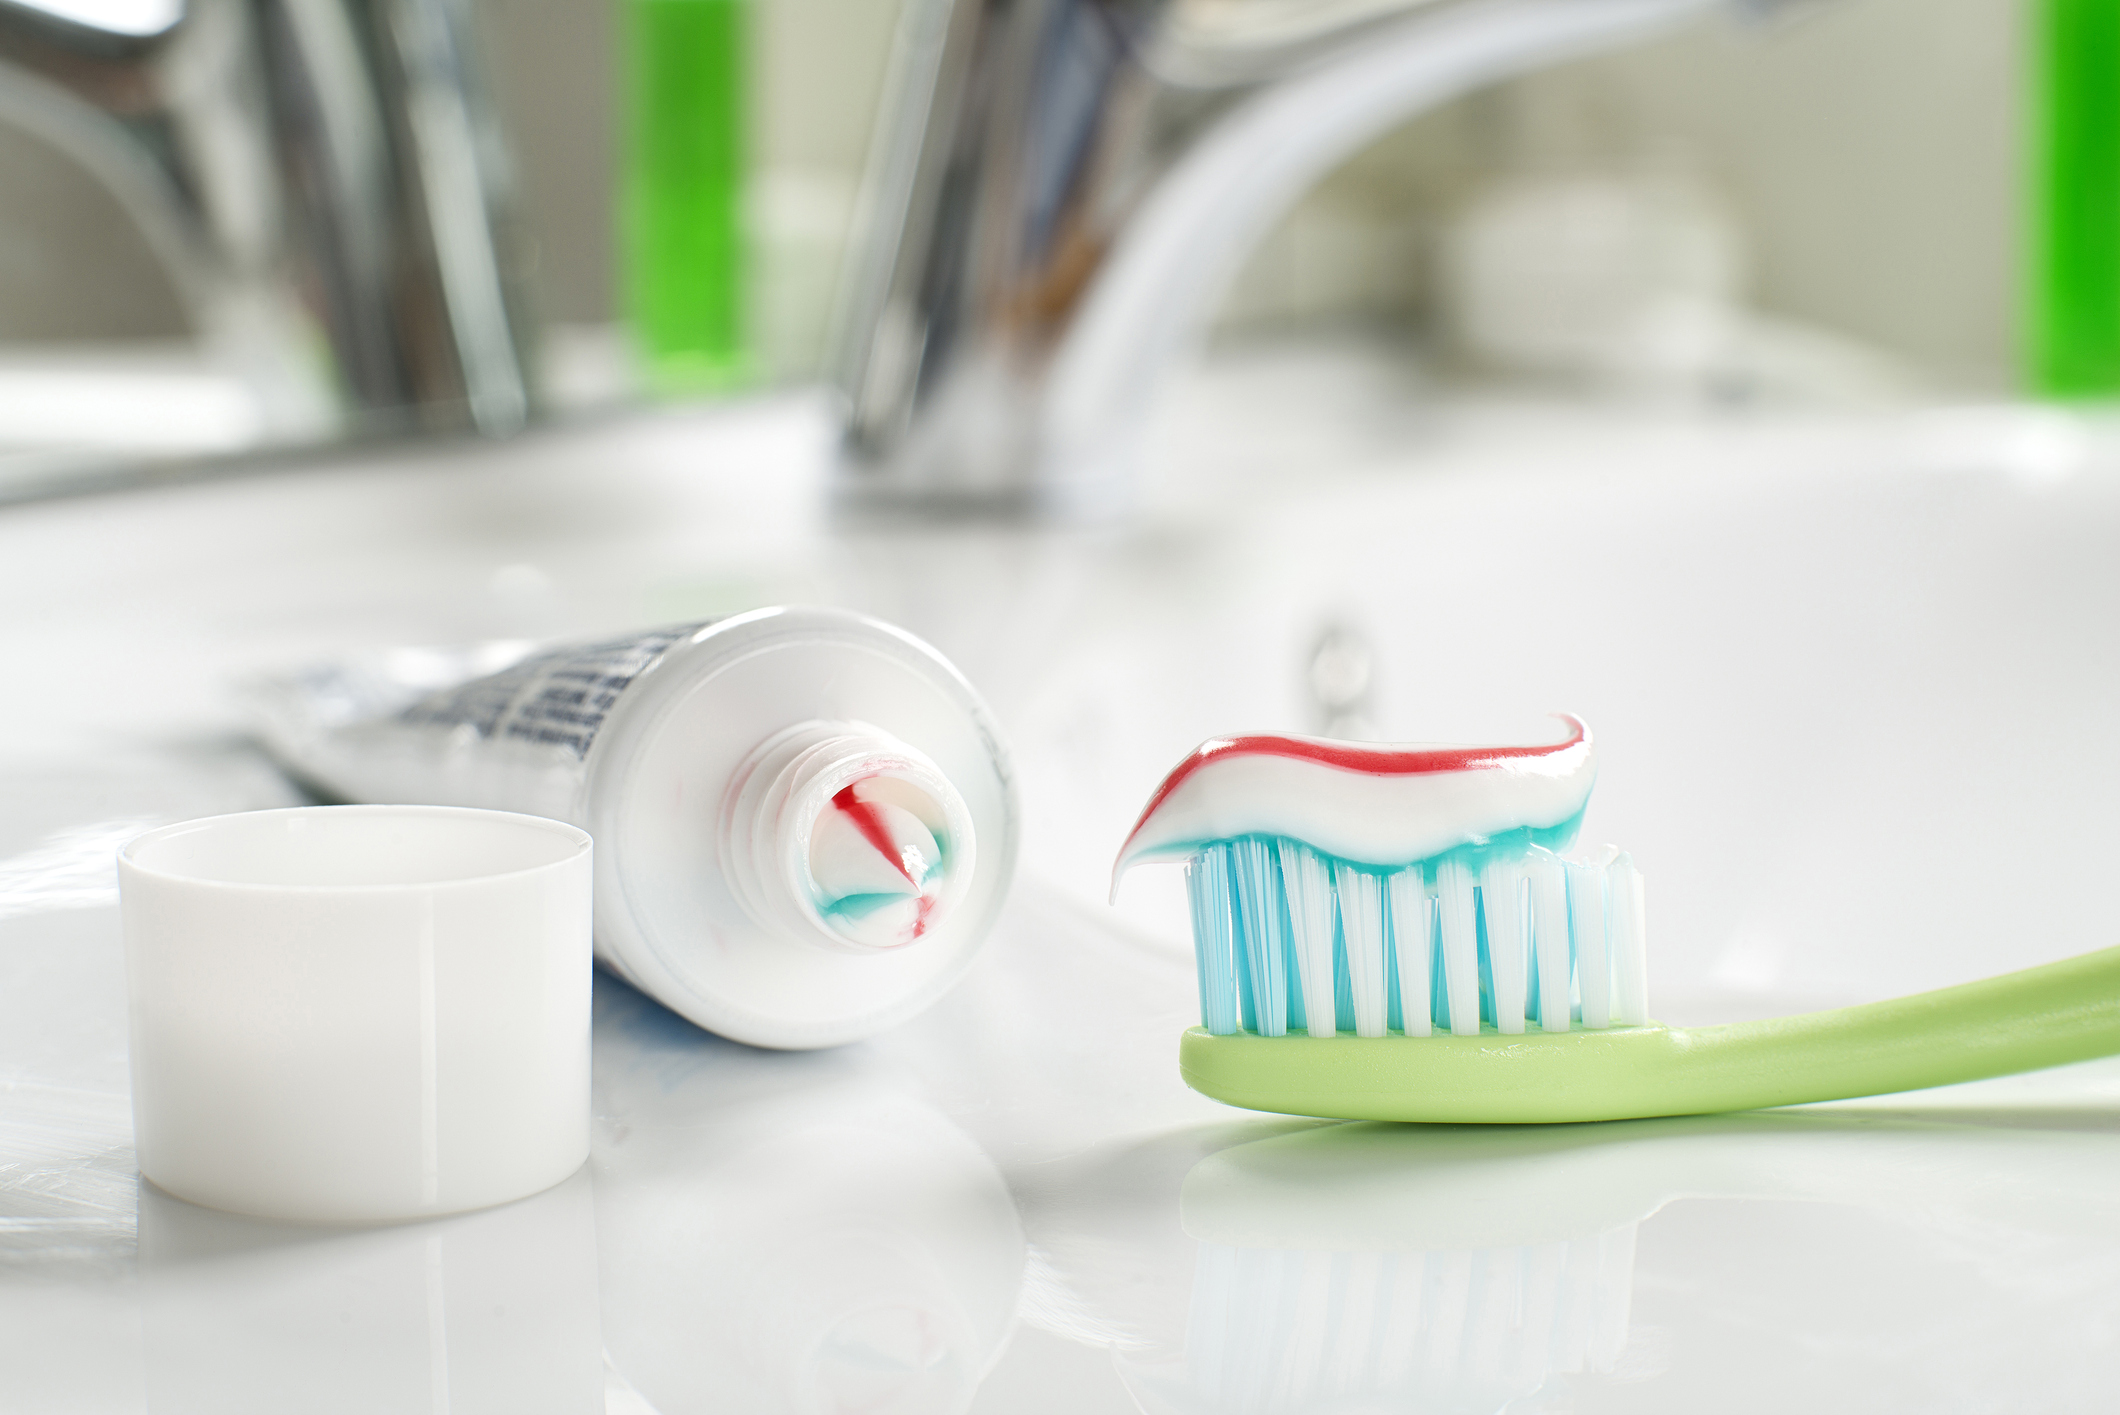 Fluoride; Is it good or bad? Fluoride's positive and negative effects on your teeth, gums, and body